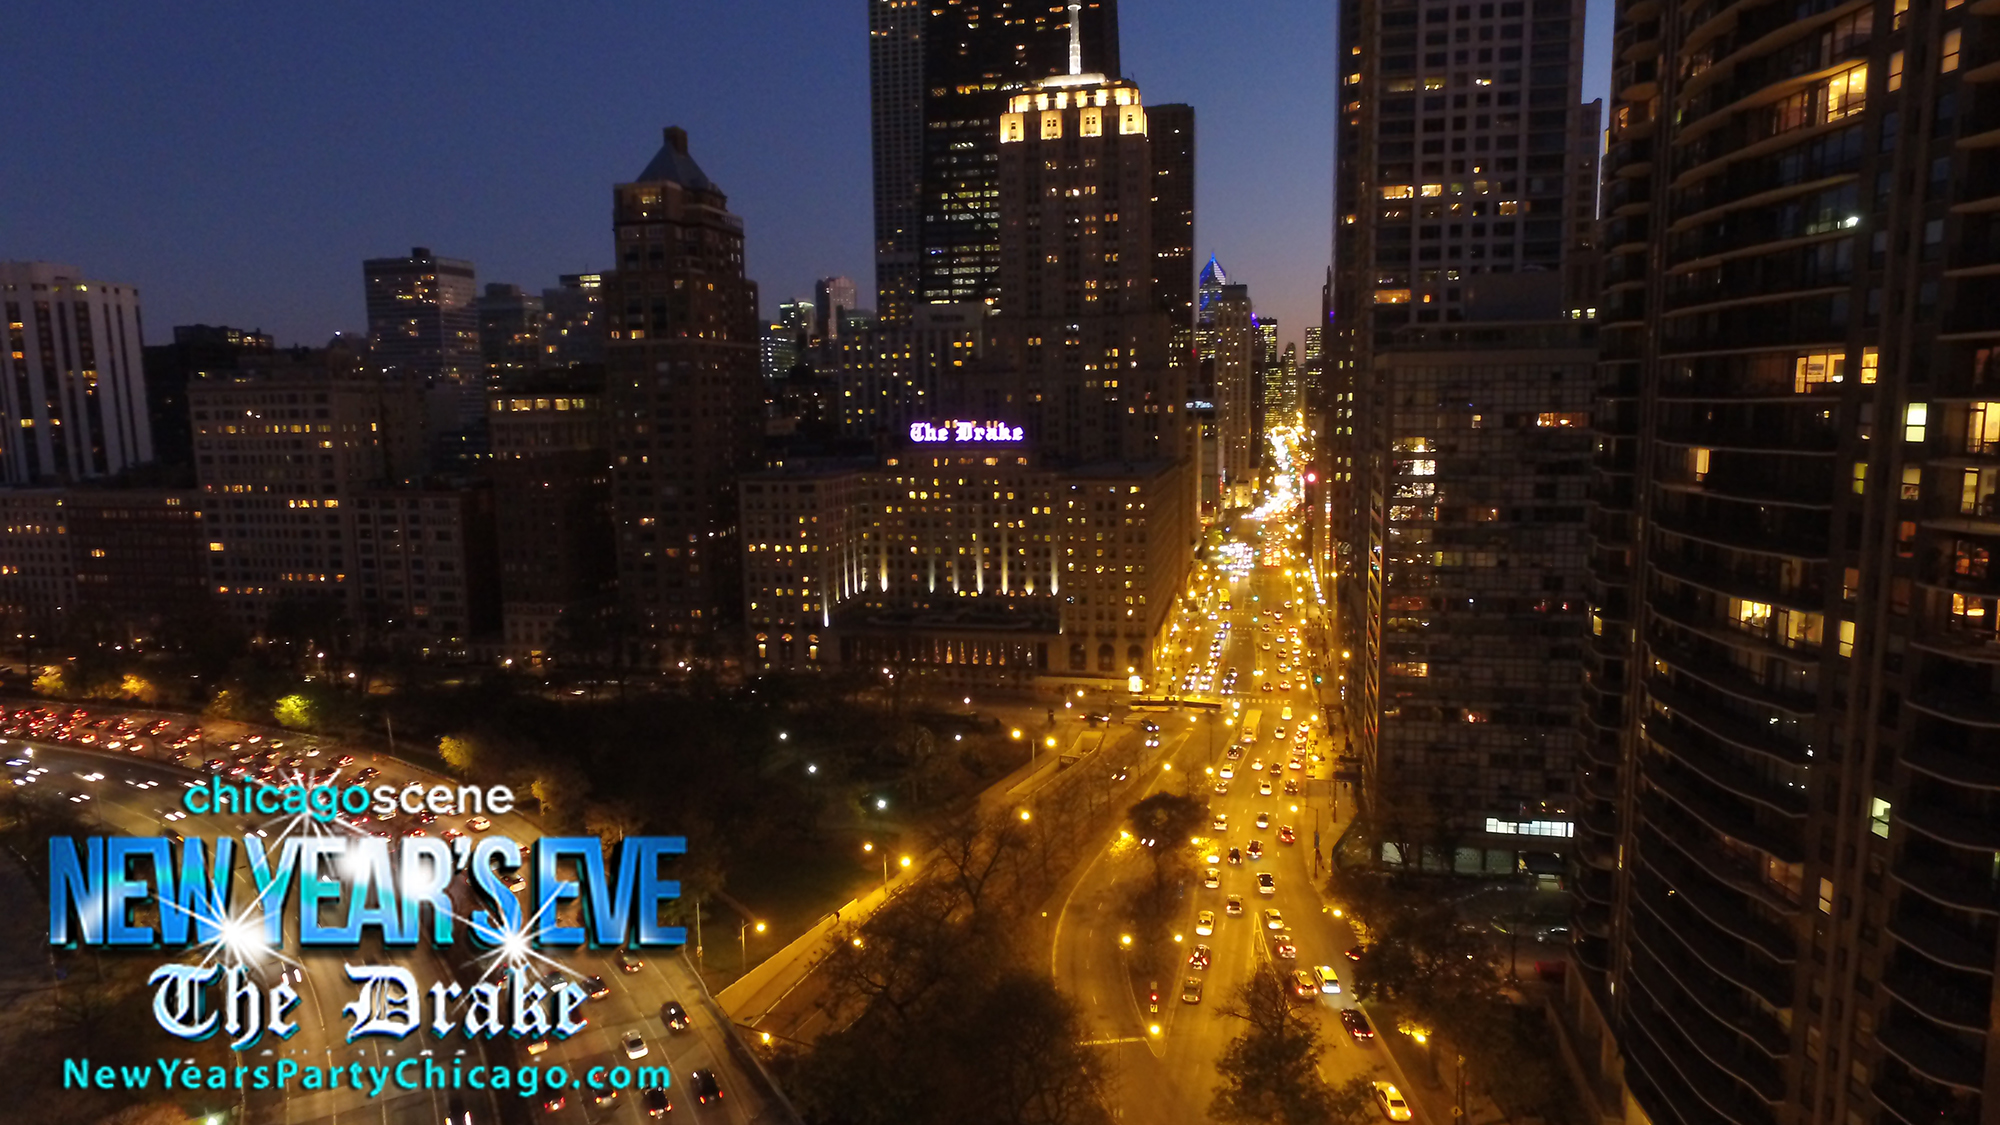 Chicago s Longest Running New Year s Eve Party at the Drake Hotel     The Drake Hotel Chicago New Year s Eve Party